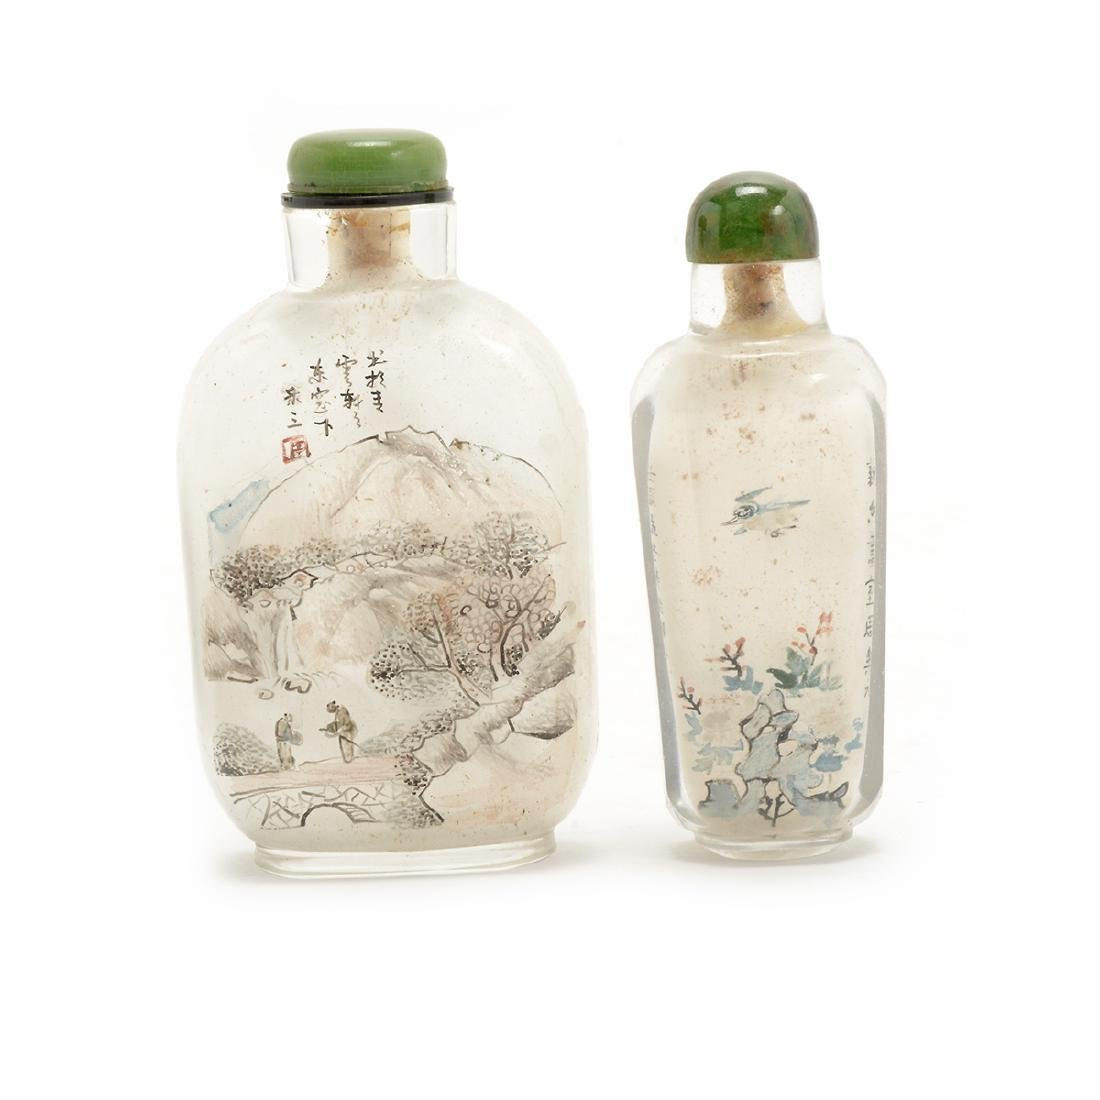 Two Inside Painted Glass Snuff Bottles, Early 20th C